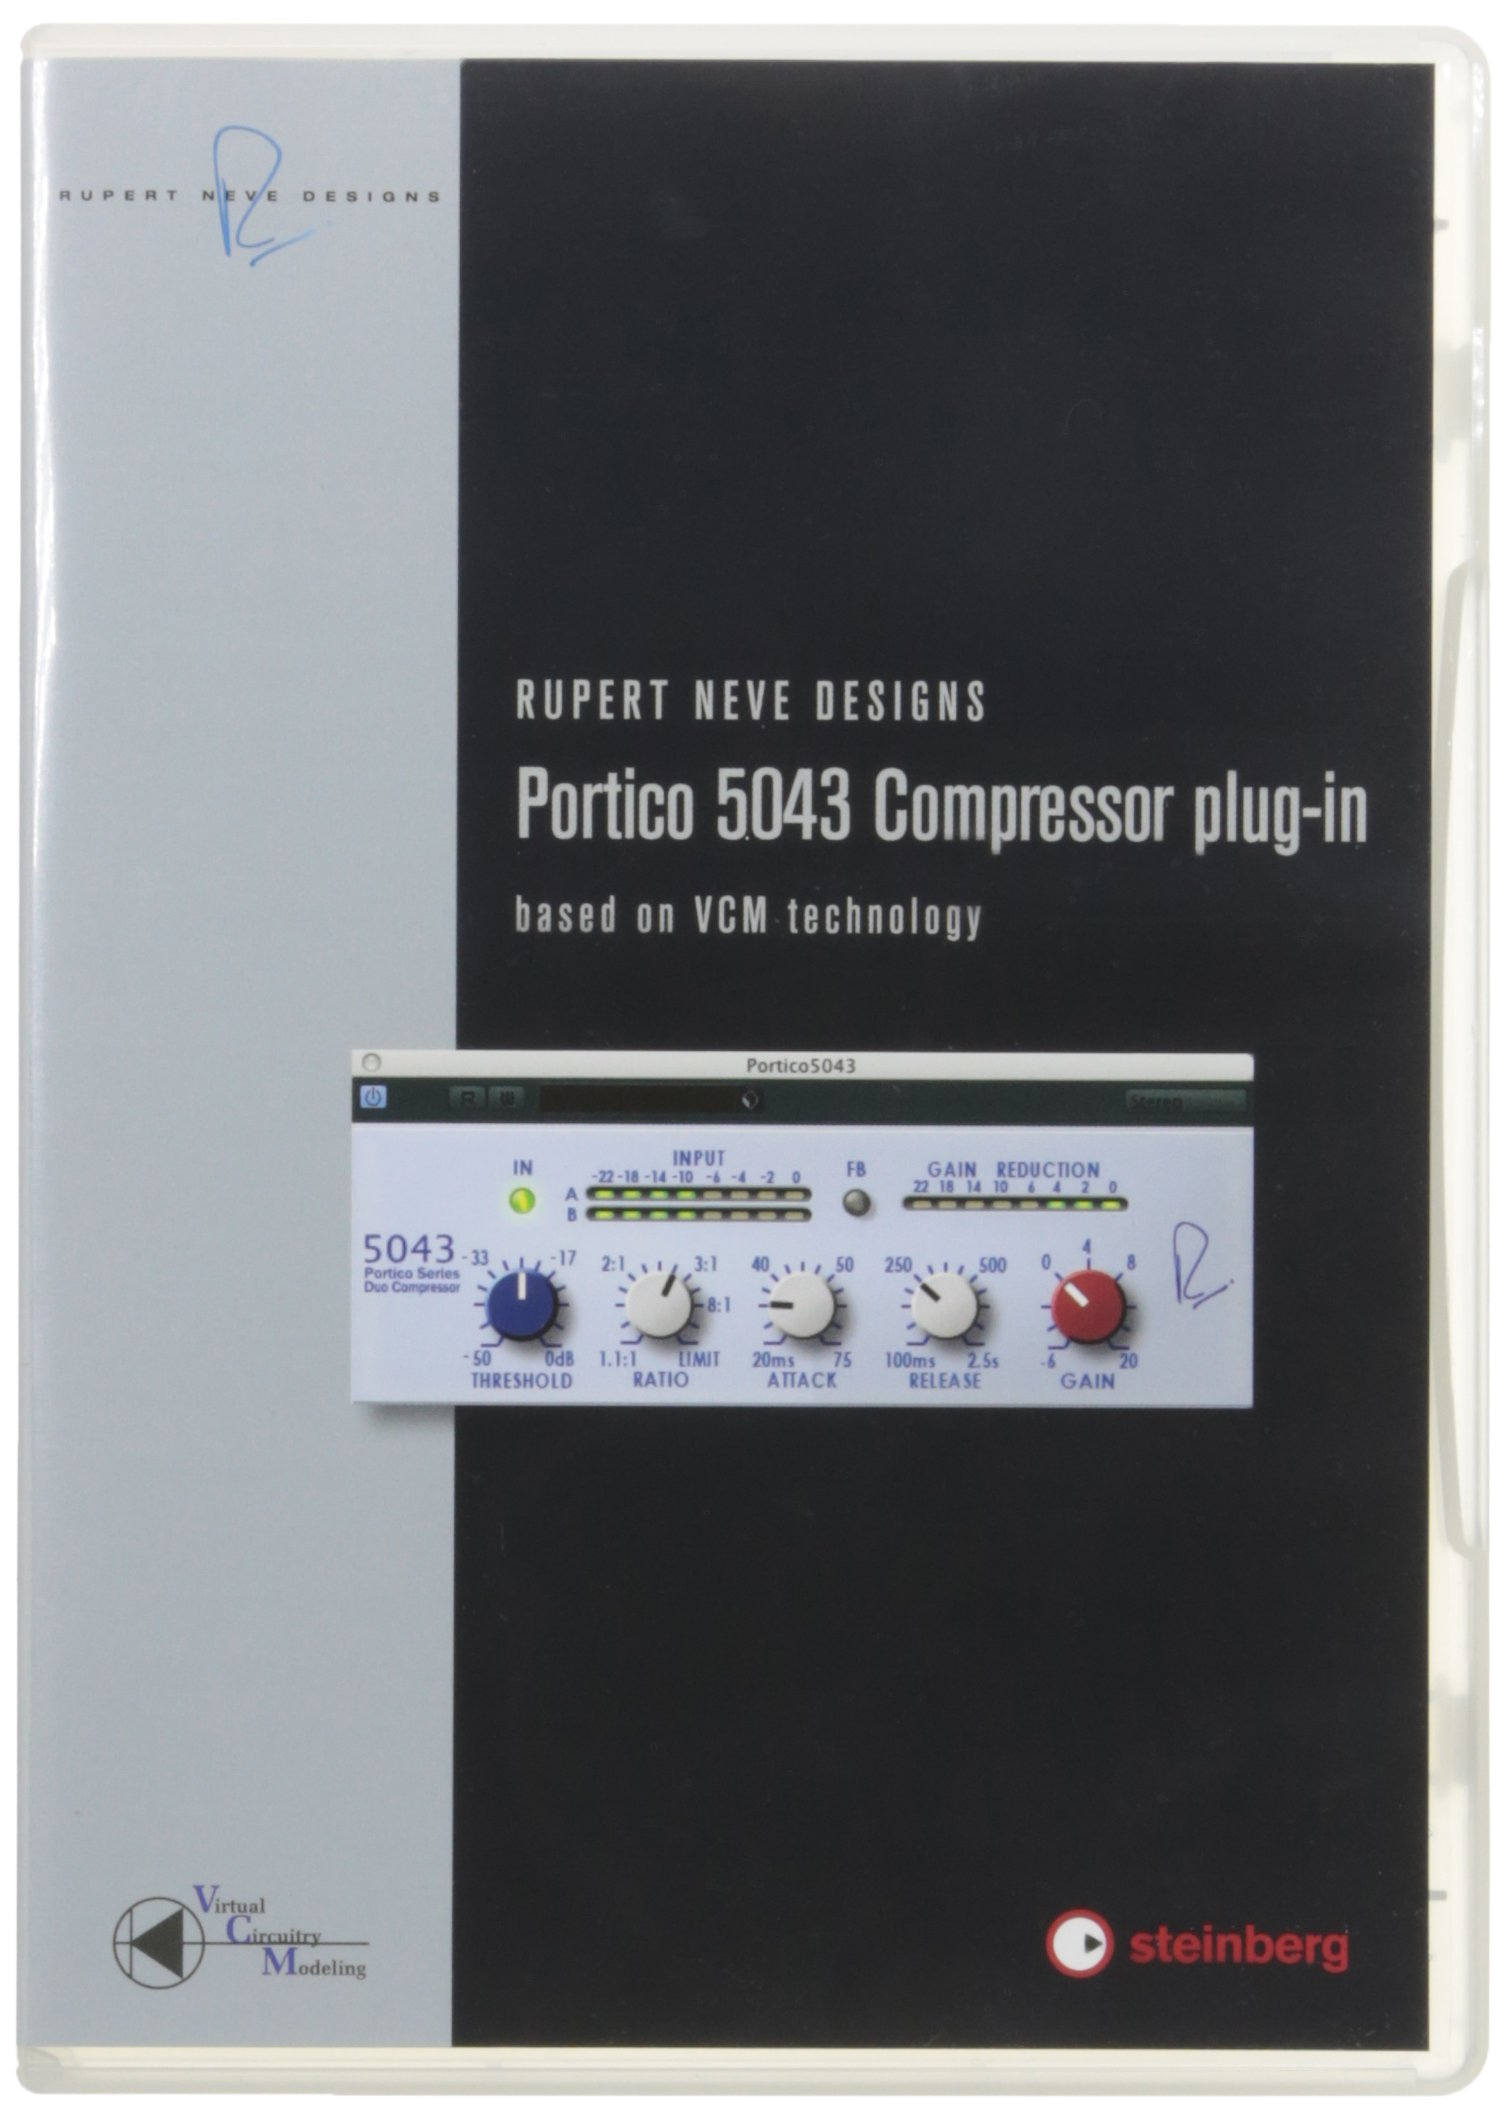 Steinberg RND Portico 5043 Compressor Audio Plug-in